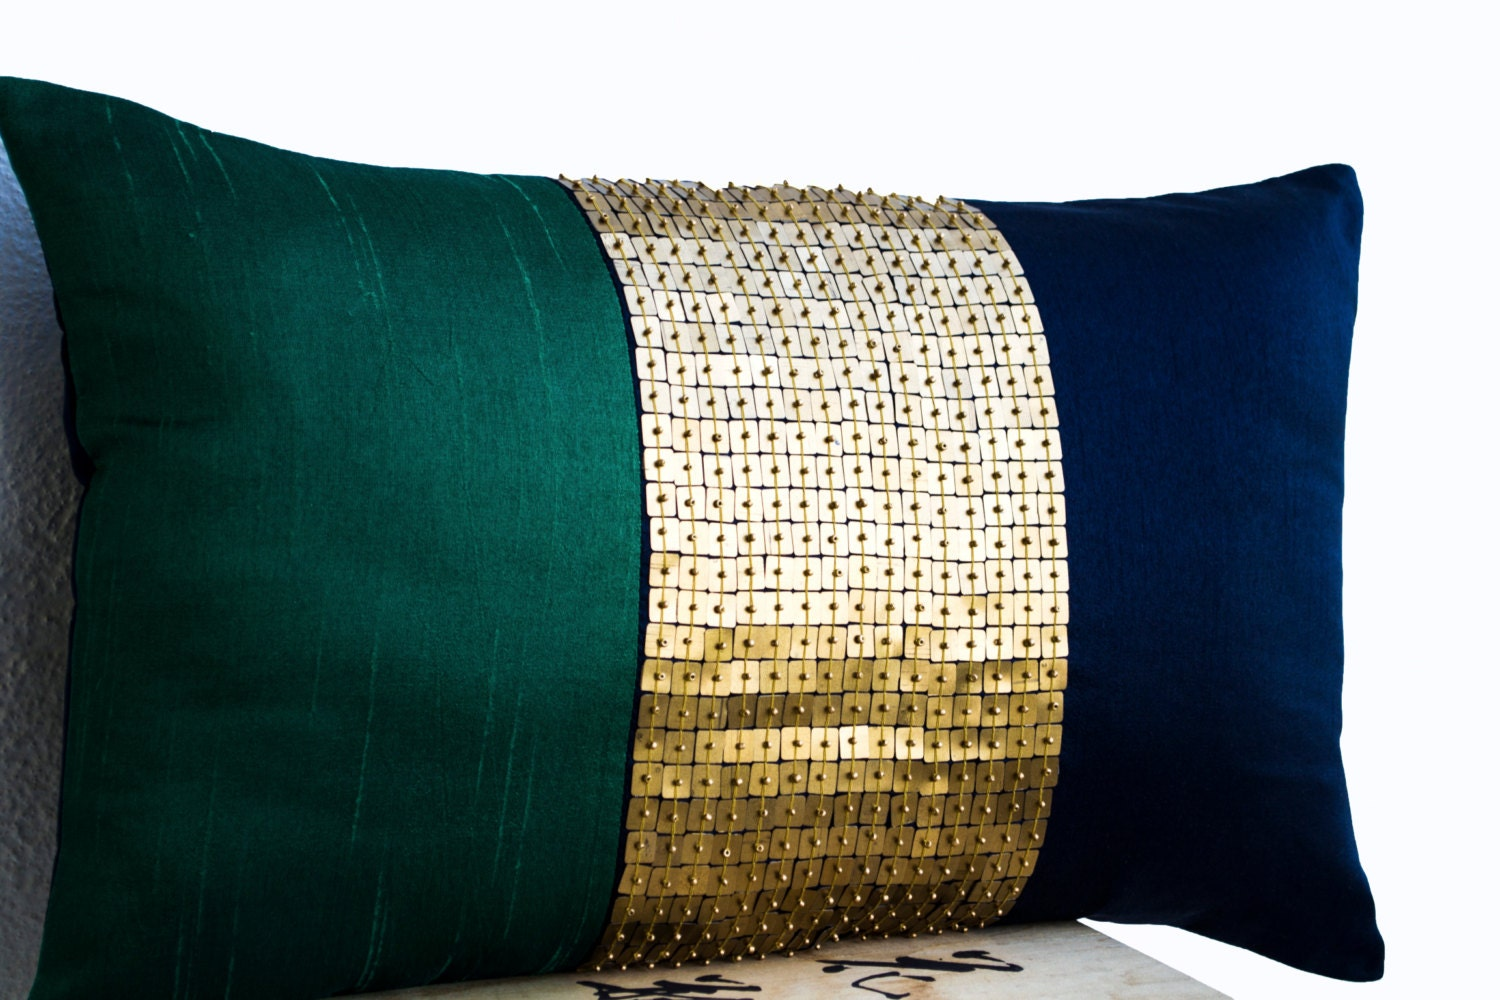 Beaded Throw Pillow Cover Emerald green navy blue gold color